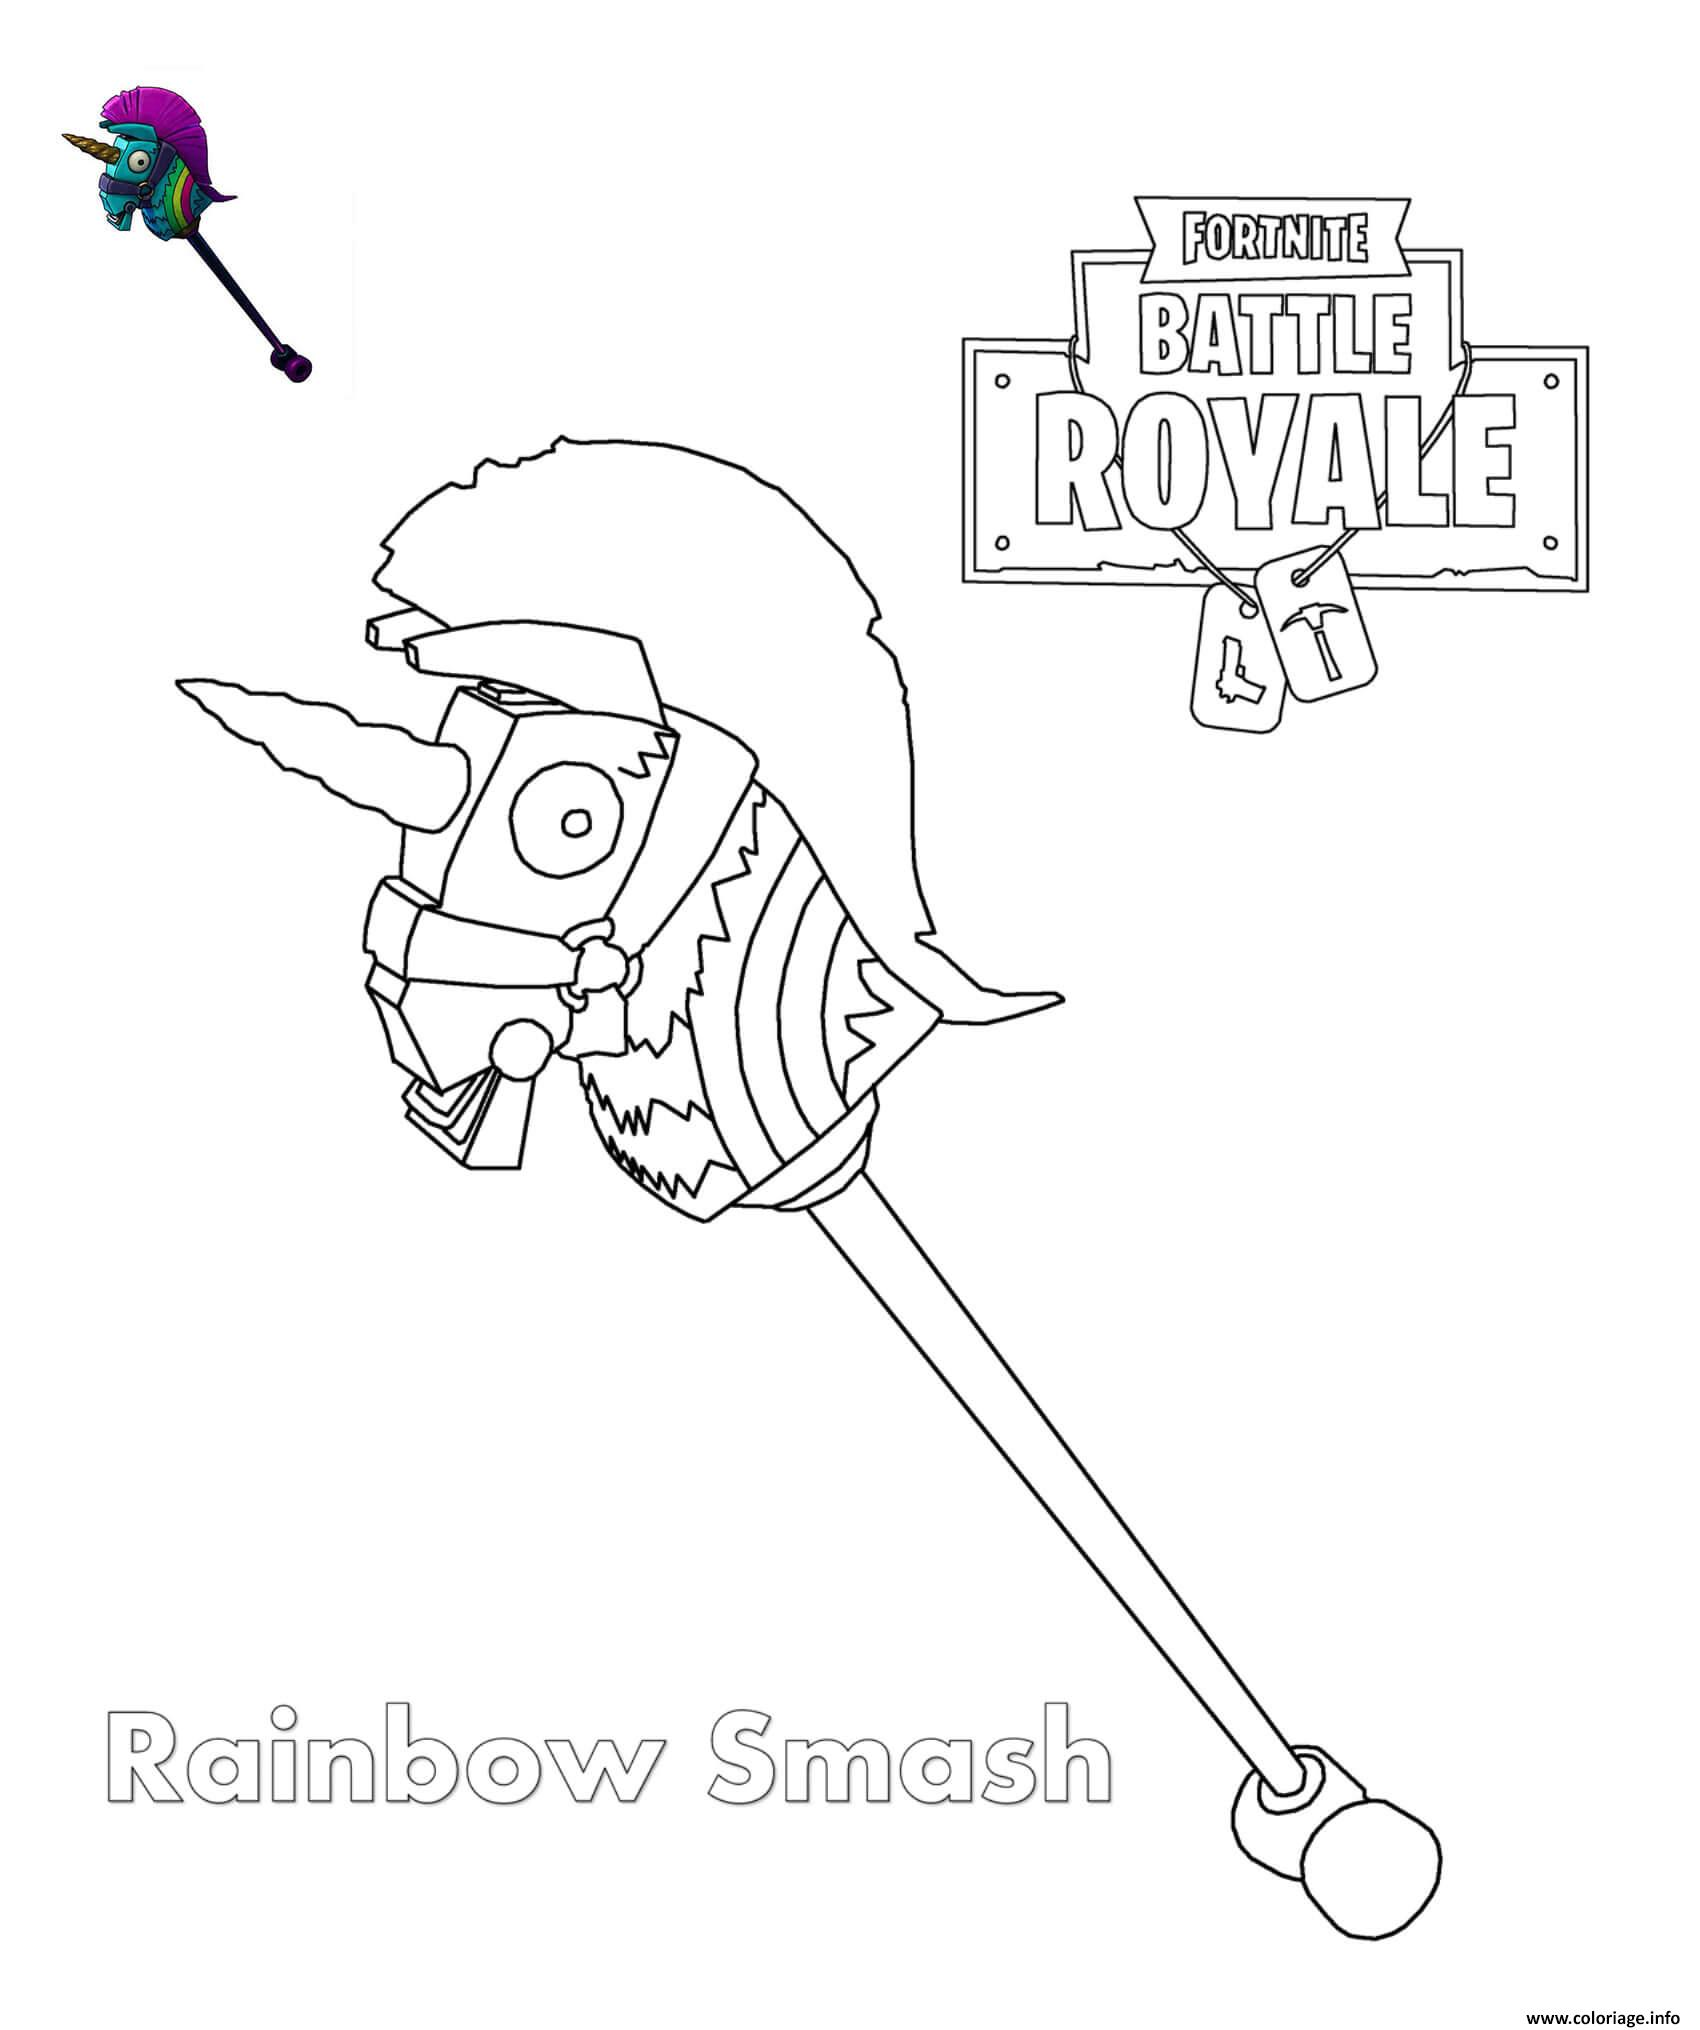 Coloriage Rainbow Smash Fortnite Dessin à Imprimer